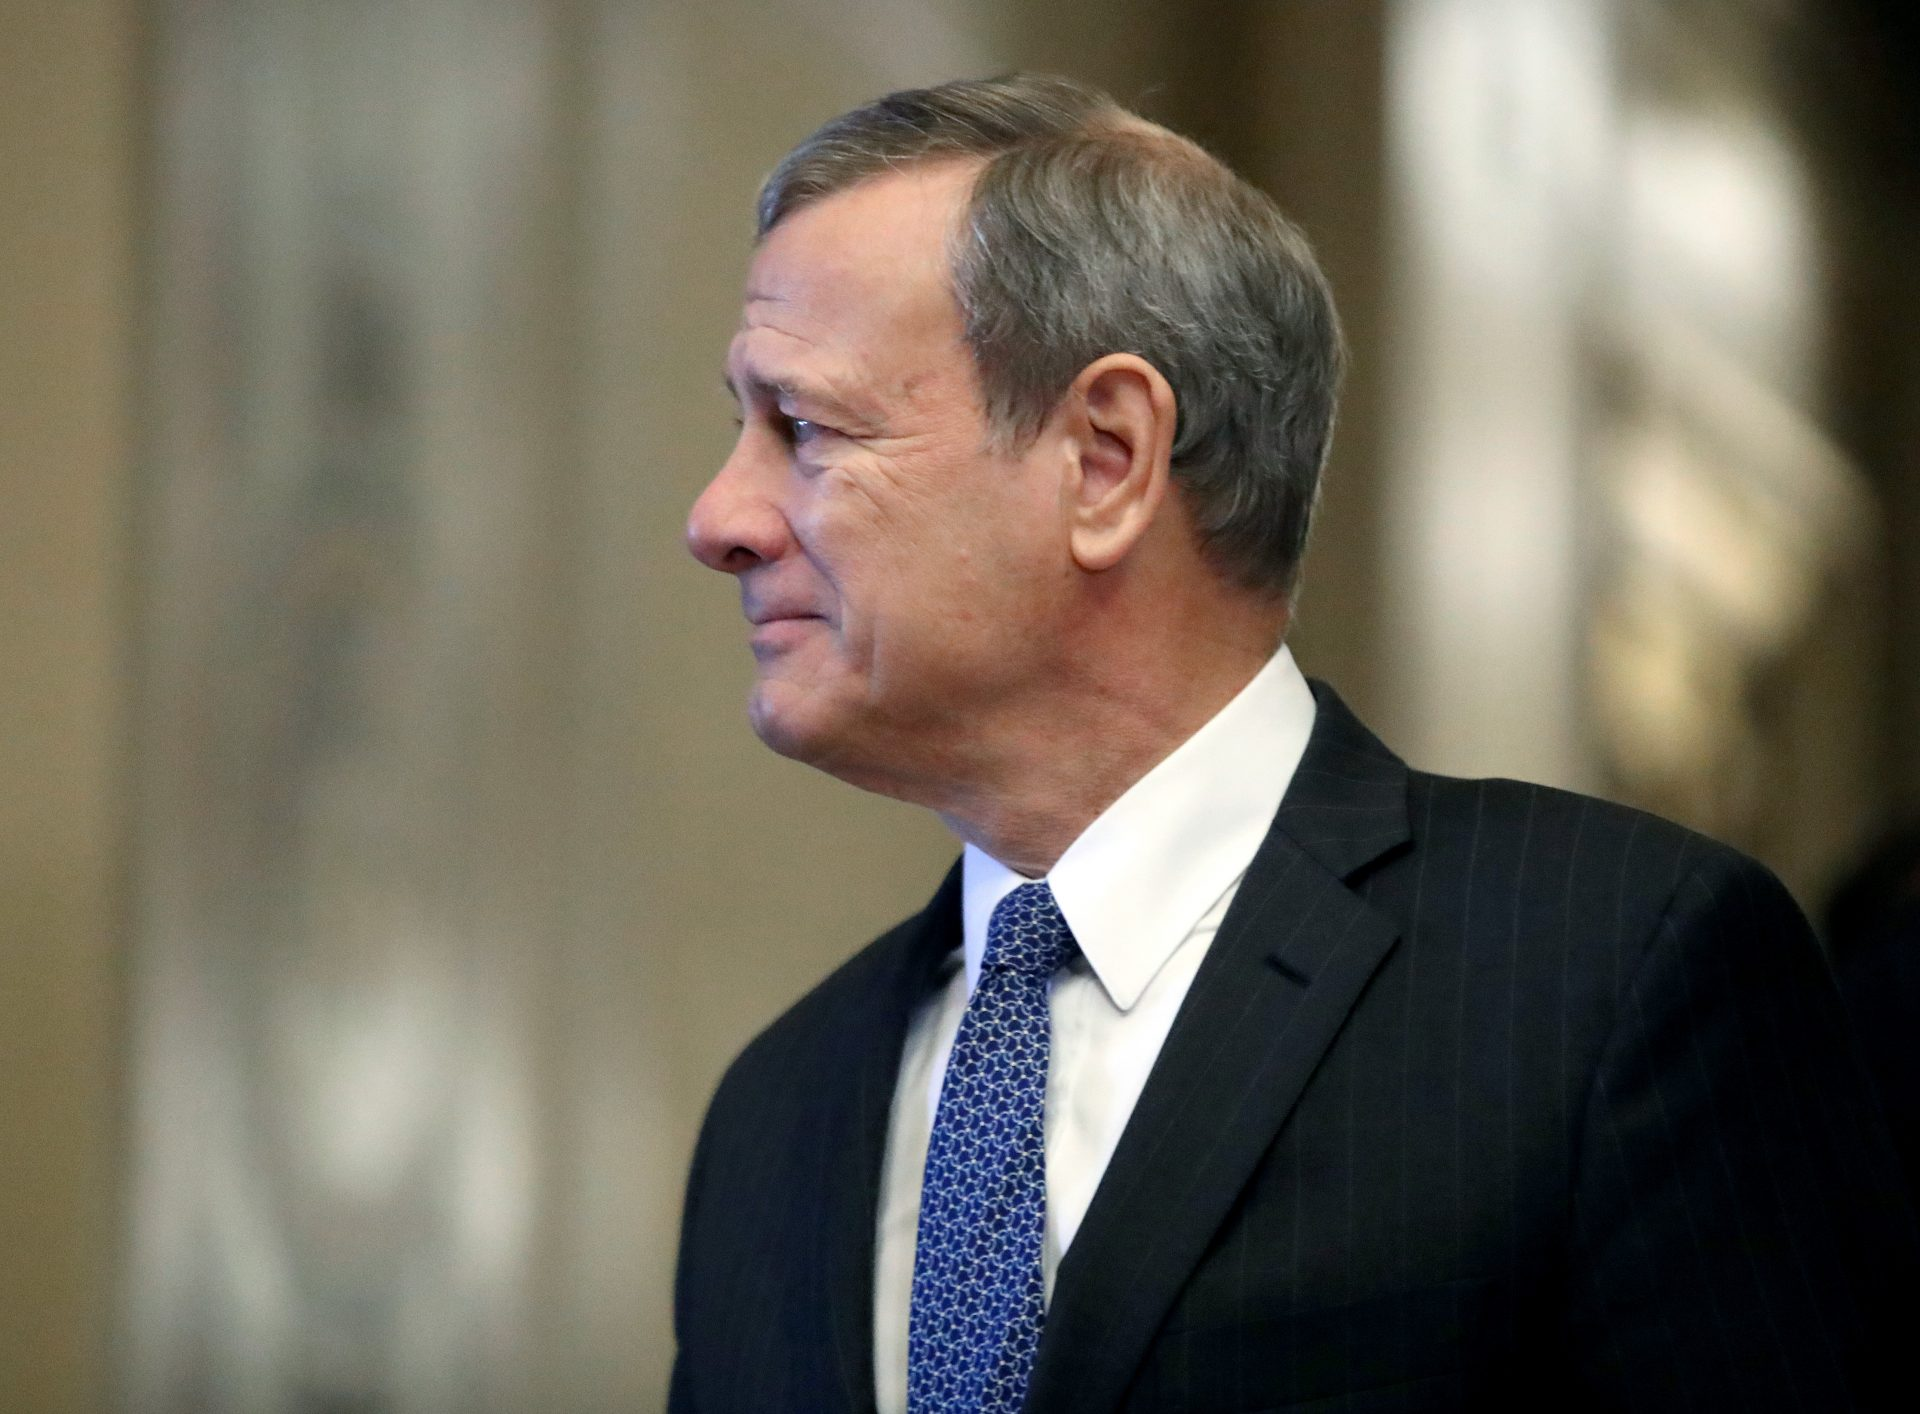 U.S. Supreme Court Justice John Roberts arrives at the U.S. Capitol for the Senate impeachment trial of U.S. President Donald Trump, on January 31, 2020 in Washington, DC. Today Senators are expected to debate and then vote on whether to include additional witnesses and documents.